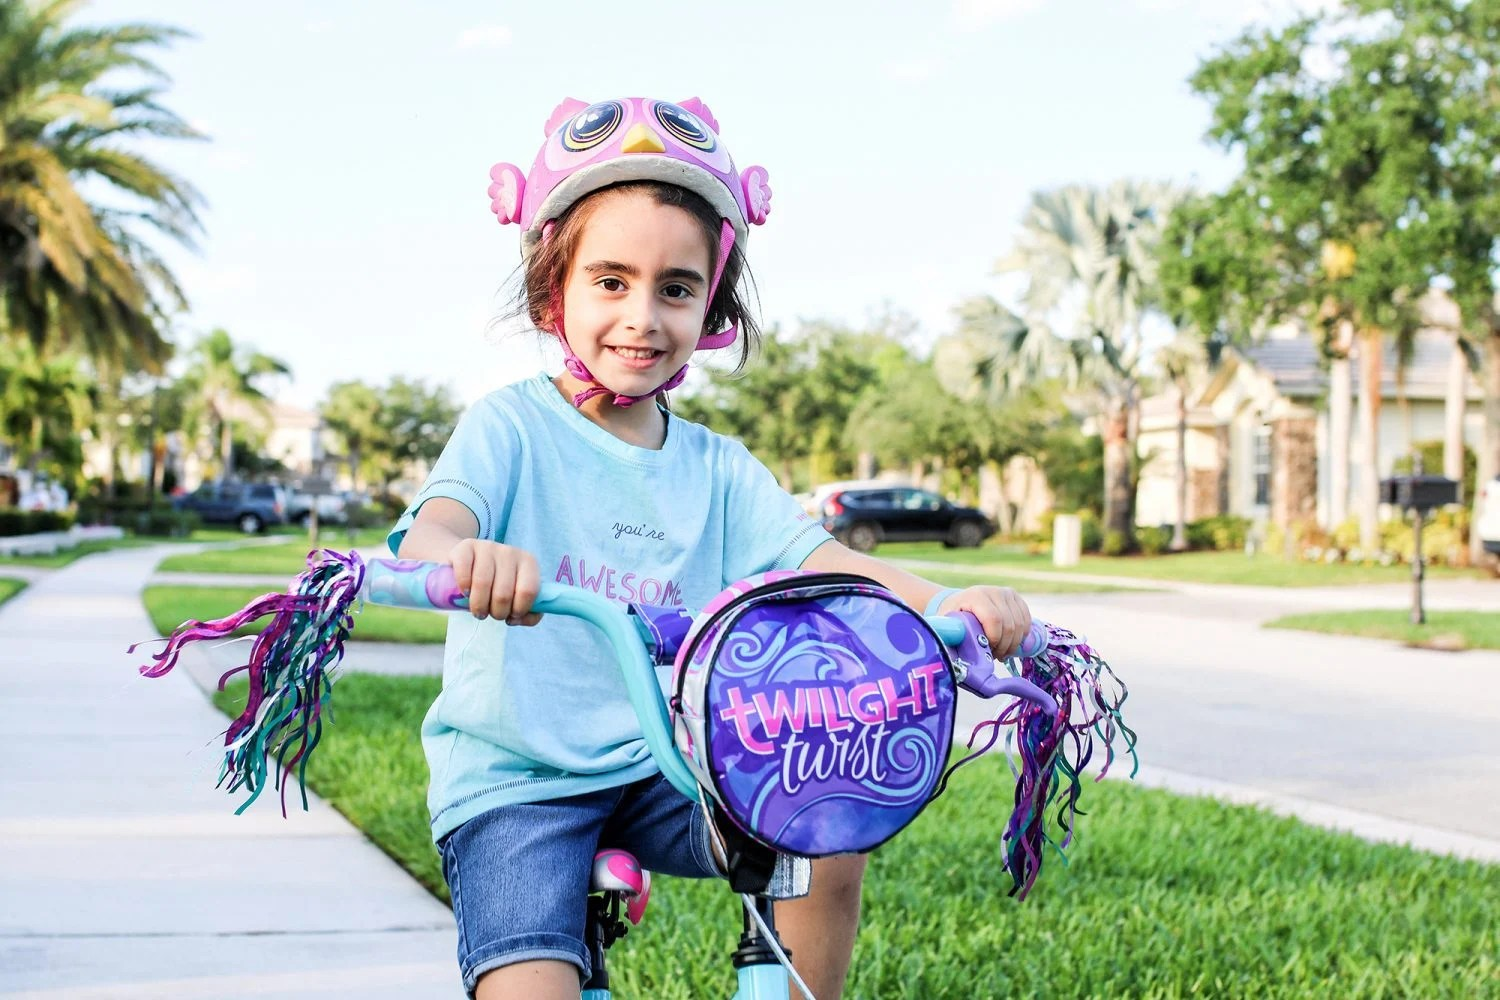 National Bike Month, dynacraft, dynacraft bikes, dynacraft bicycles, bike, bicycle, bicycle shop, kids bikes, bike store, girls bikes, toddler bike, boys bikes, bicycle accessories, kids mountain bikes, girls bicycle, mens bicycles, cruiser bicycle, toddler bicycle, bmx bikes for kids, road bicycle, boys bicycles, best kids bikes, kids bikes for sale, toddler girl bike, girls mountain bike, childrens bikes, boys mountain bike, little girl bikes, kids road bike, toddler boy bikes, youth mountain bikes, boys bike sizes, kids cycle, cheap kids bikes, children bicycle, bikes for kids girls, youth bikes, bicycle price, boys bikes for sale, ladies bicycle, little kids bikes, little boys bikes, kids bikes boys, cool bikes for kids, little girl bicycle, toddler cycle, child bike, kids bicycles for sale, toddler girl bicycle, youth bicycles, best place to buy kids bikes, best bicycle for kids, kids bikes near me, where to buy kids bikes, mom blogger, mom blog, family blog, parenting blog, 2018, gifts for kids